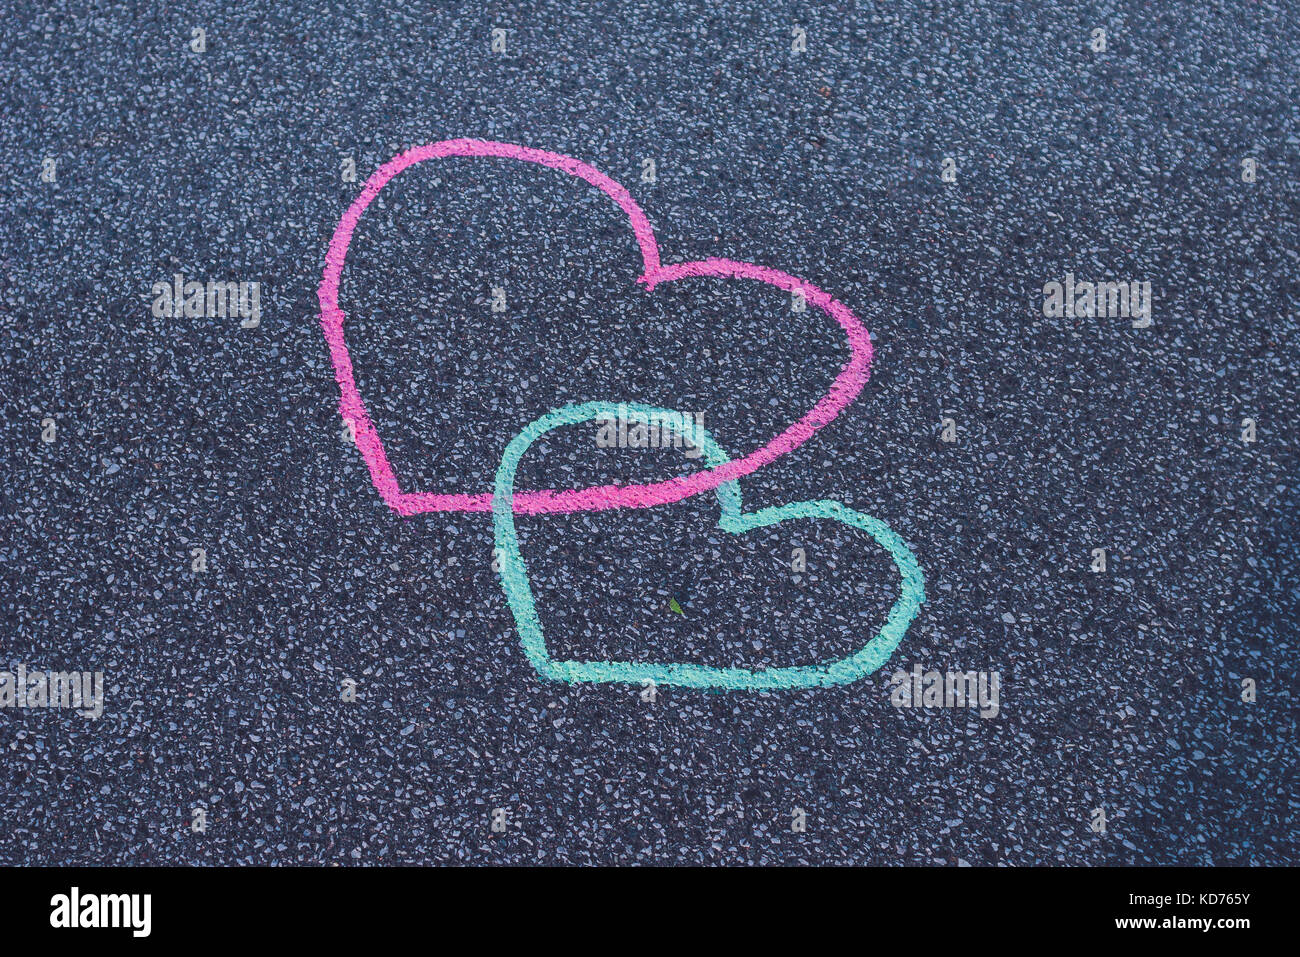 Two hearts drawing chalk on the asphalt - Stock Image